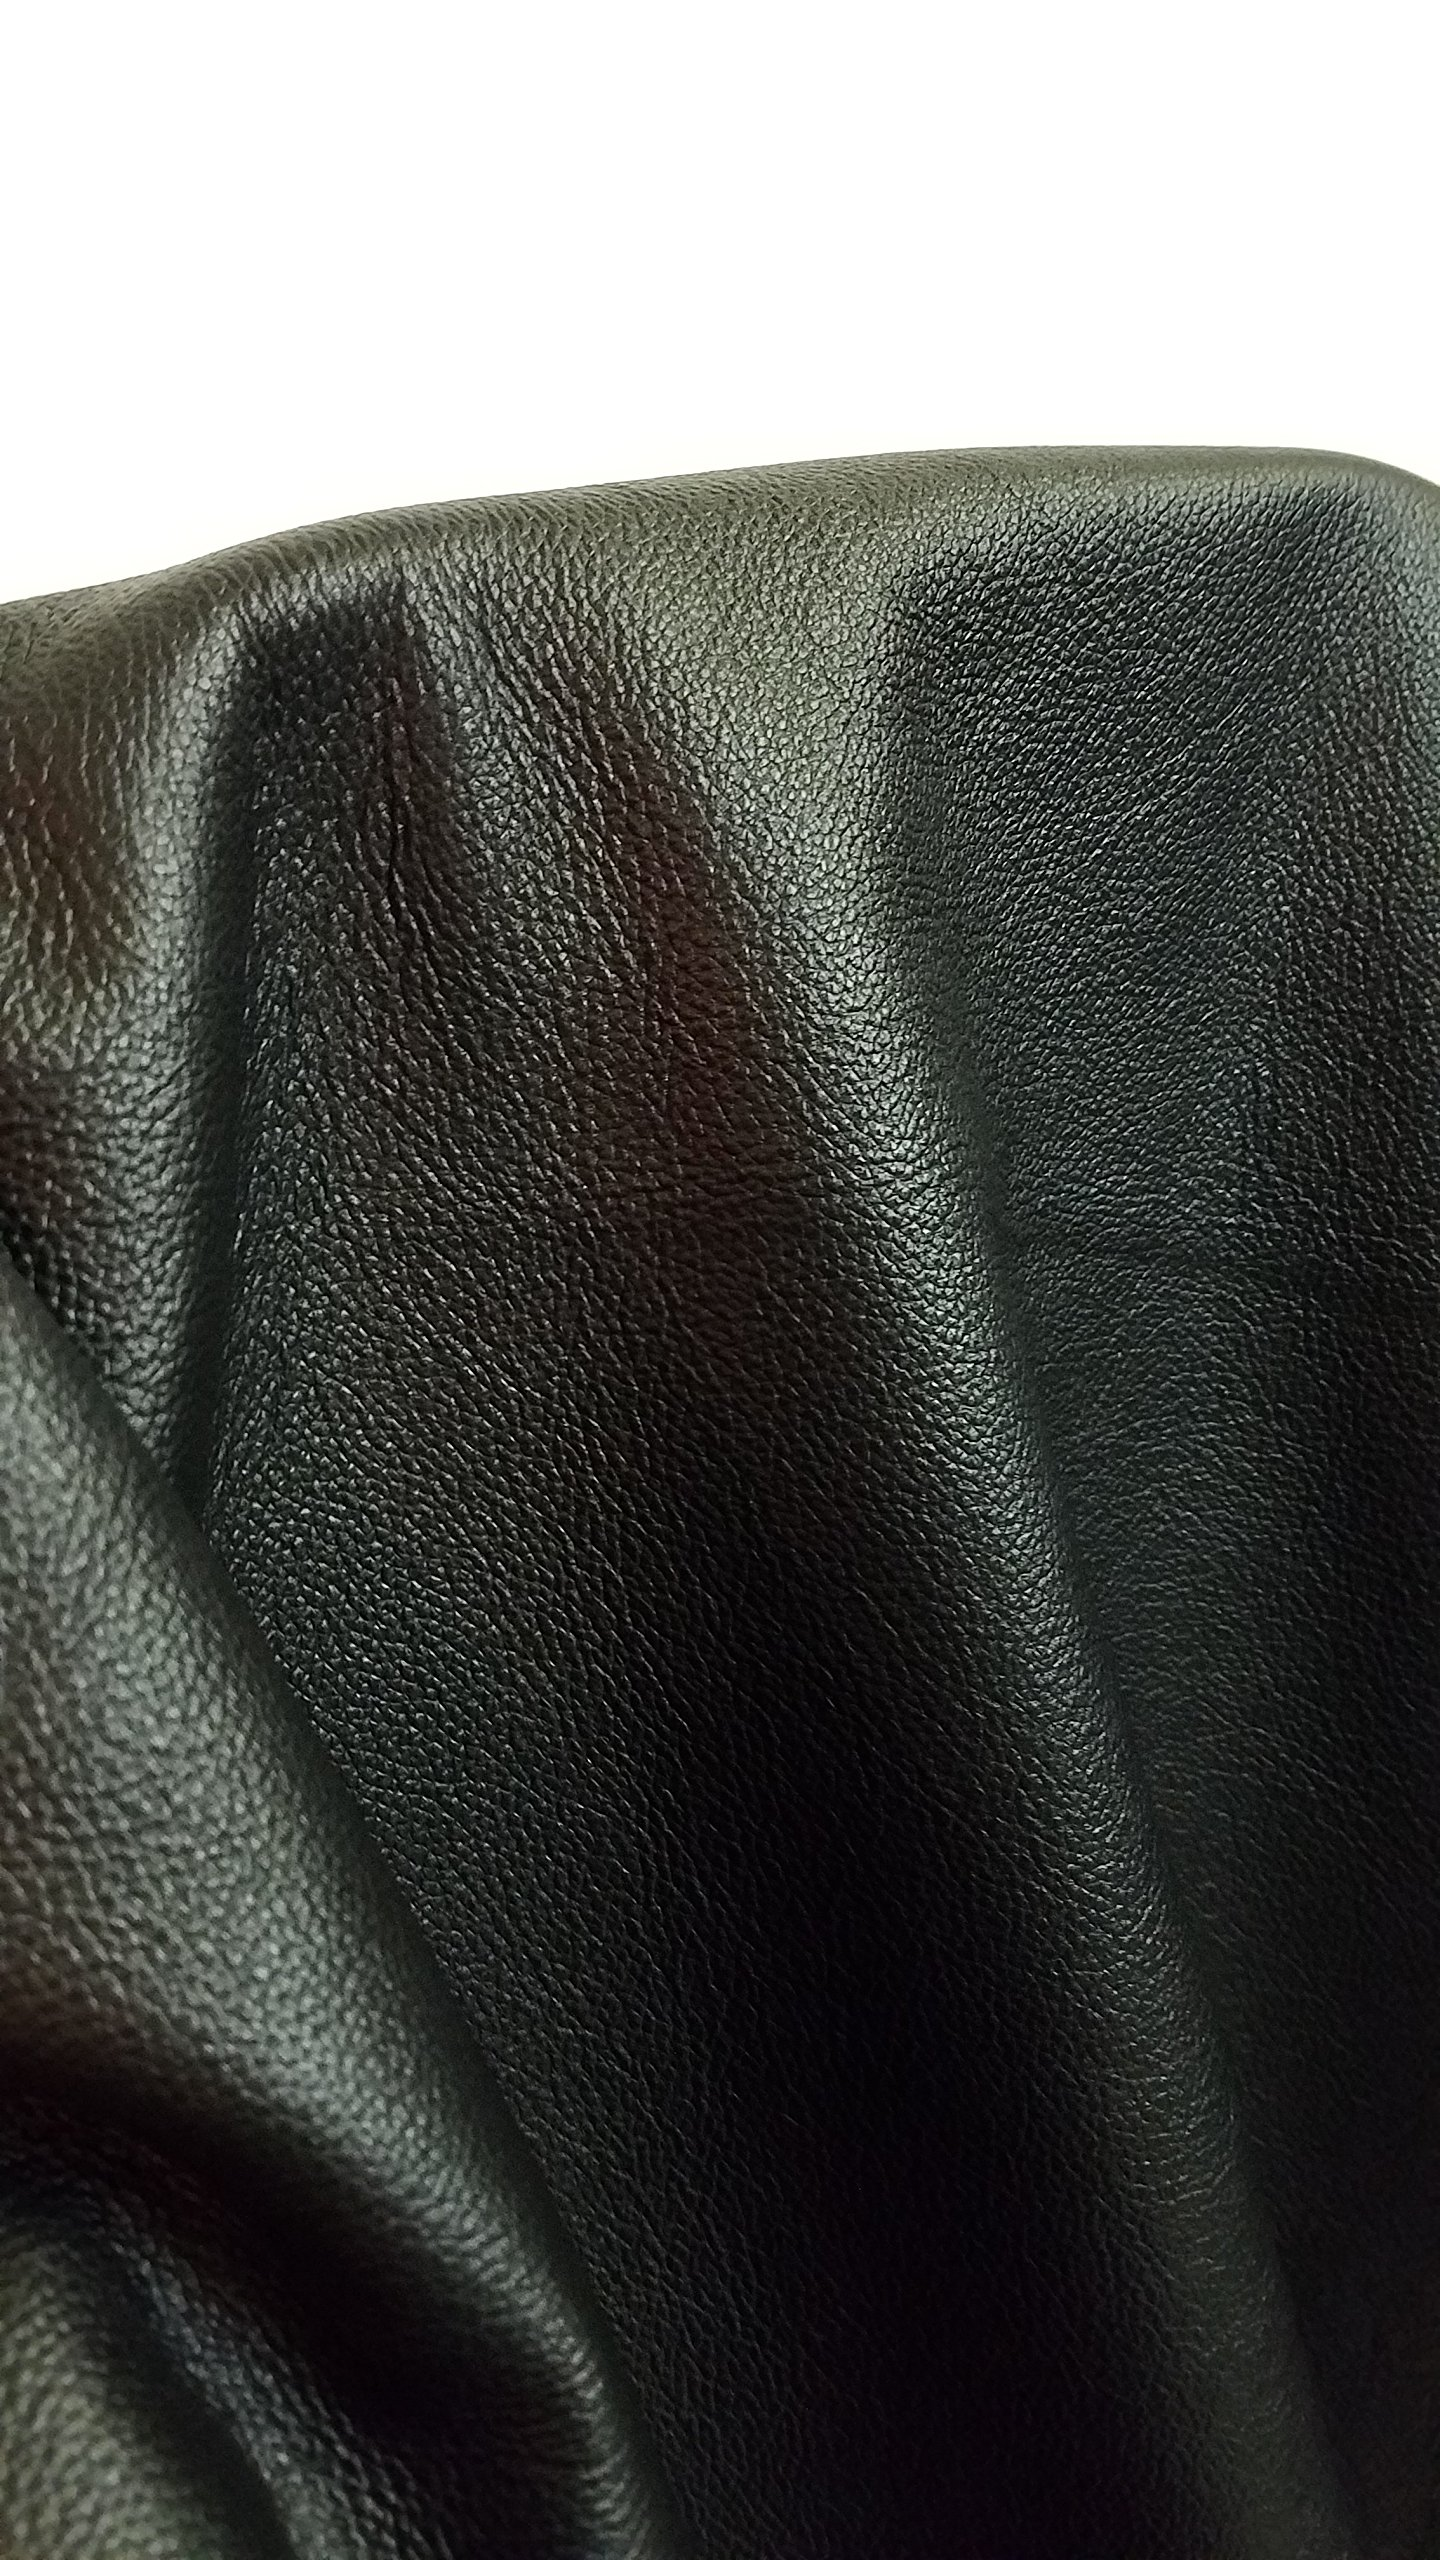 Black Upholstery Pebble Grain Cowhide Leather Various Size (20''x30'' inch Cutting) for Handbag, Footwear, Upholstery Repairs